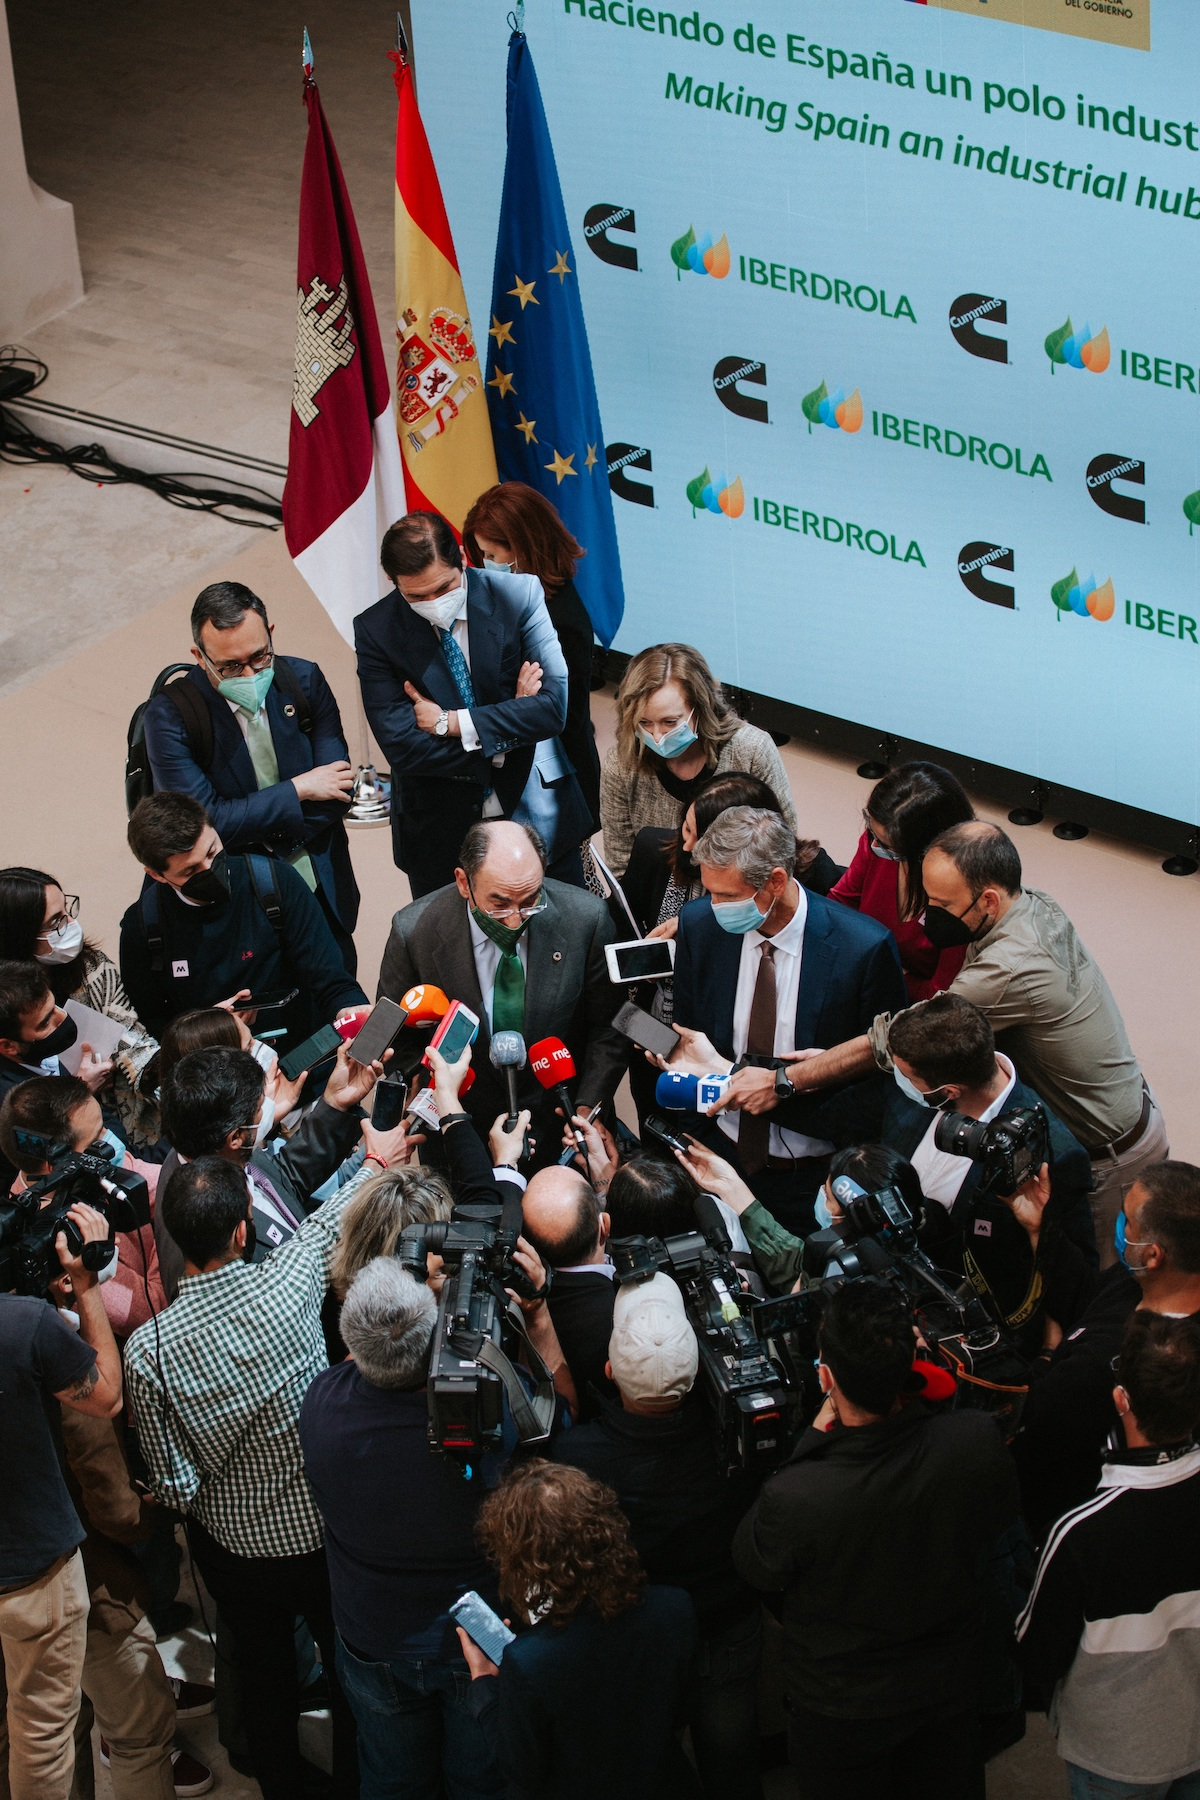 Iberdrola Chairman and CEO Ignacio Galán (left) and Cummins Chairman and CEO Tom Linebarger (right), meet with members of the Spanish media to discuss the plant announcement.